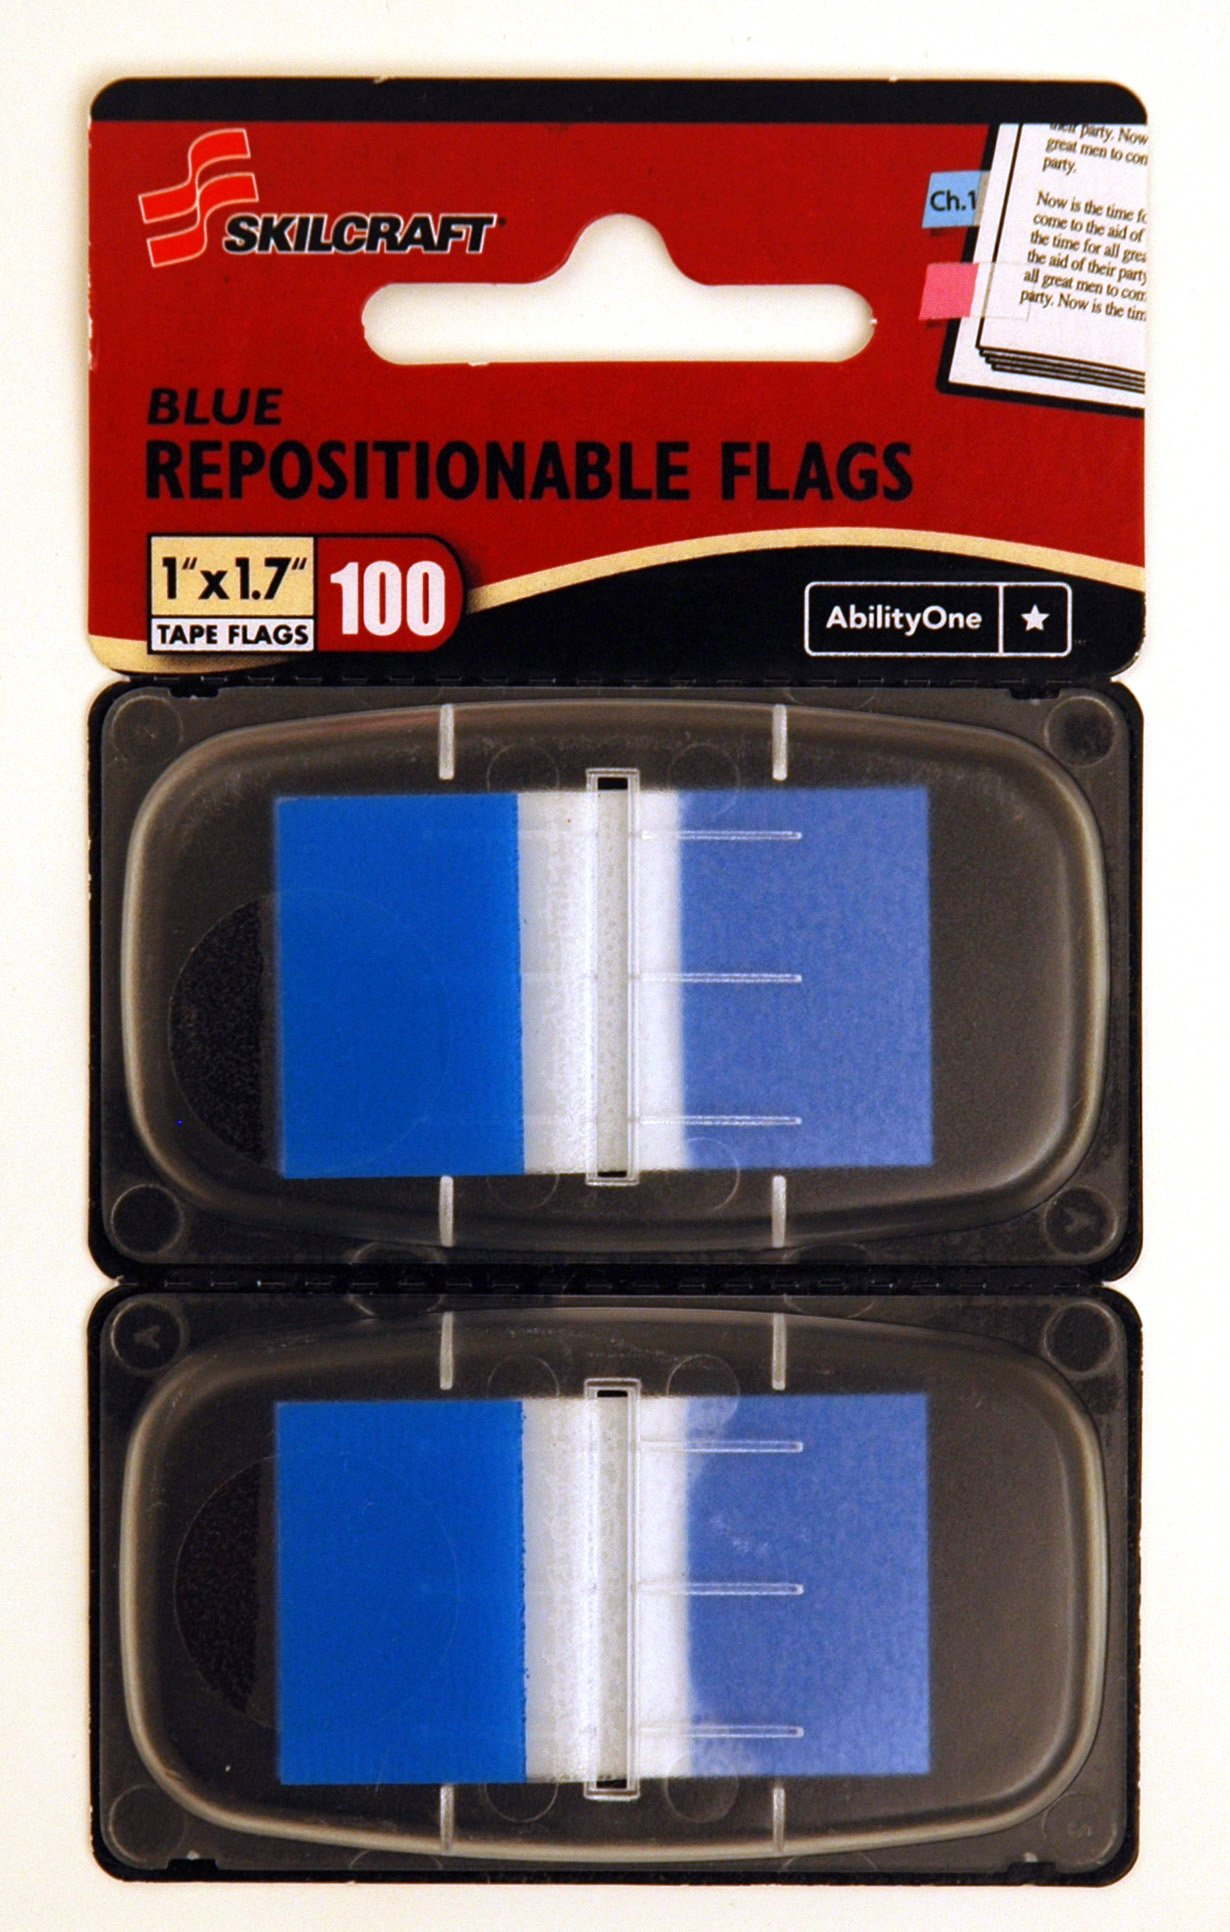 Repositionable Flag, Self-stick Flag, Self-adhesive, Removable - 1'' x 1.75'' BLUE FLAGS, Skilcraft - NSN7510013152021 (40 Paks = 4000 Flags)